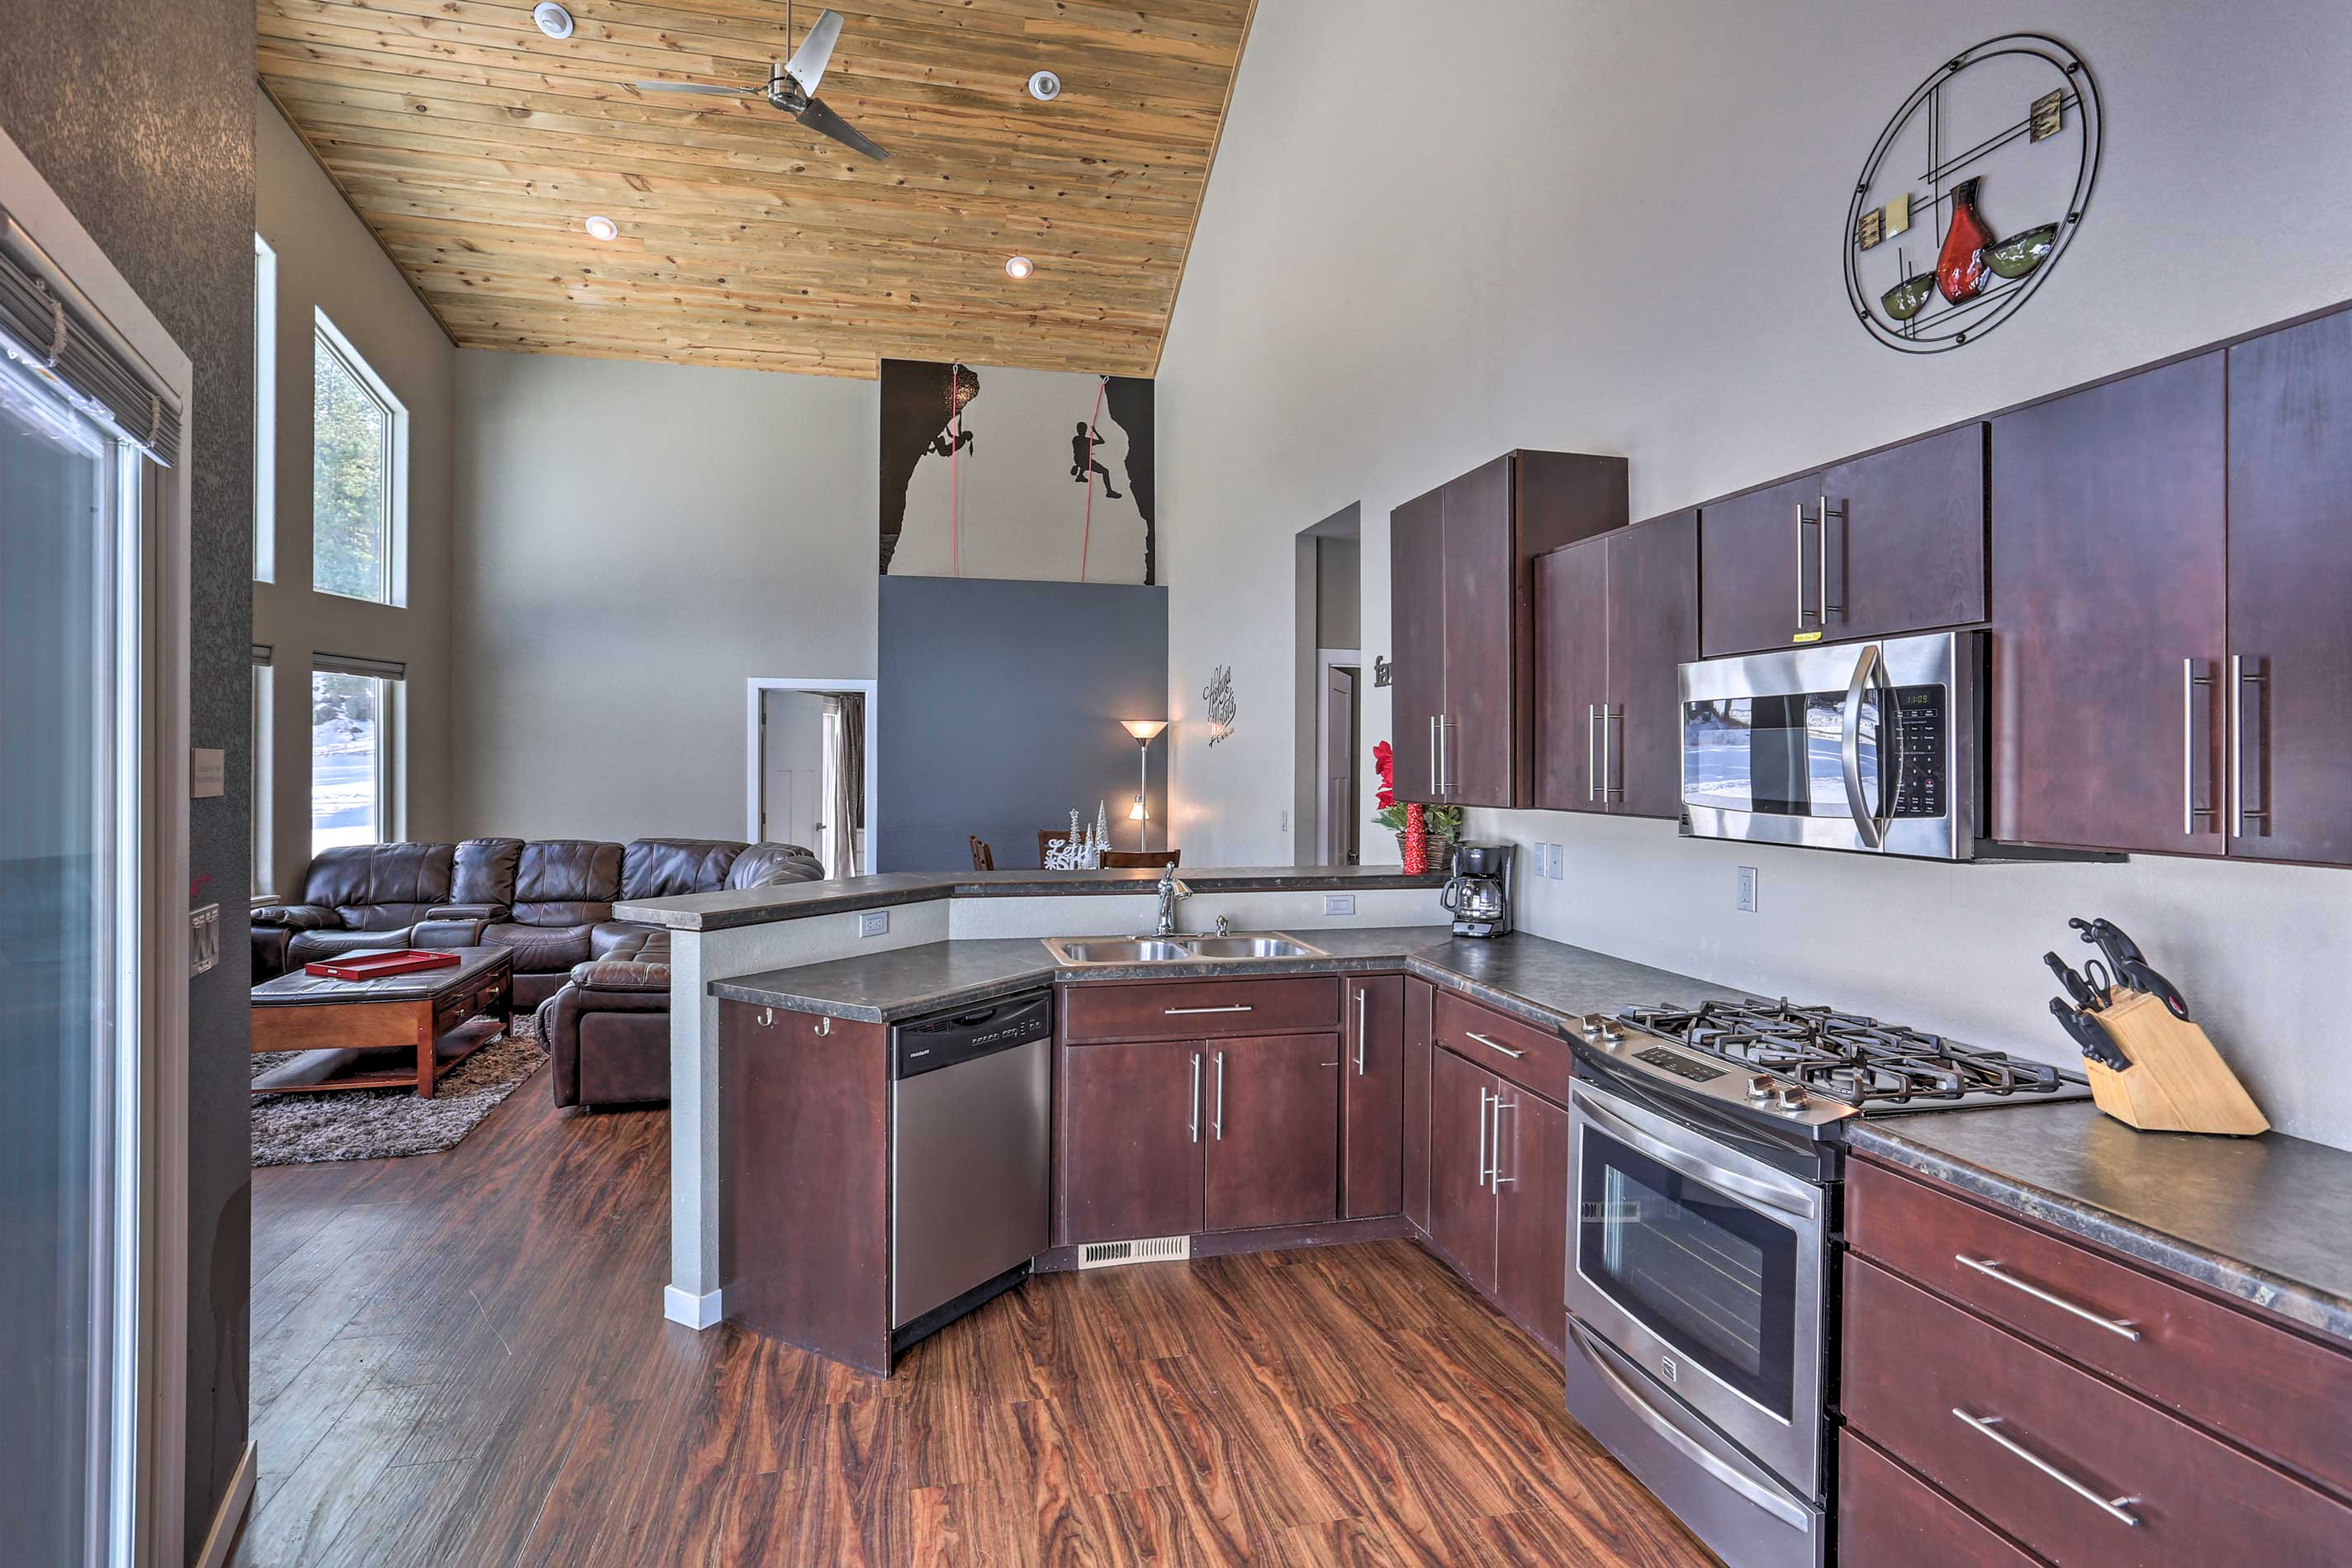 The open layout, high ceilings and plentiful natural light highlight the home.